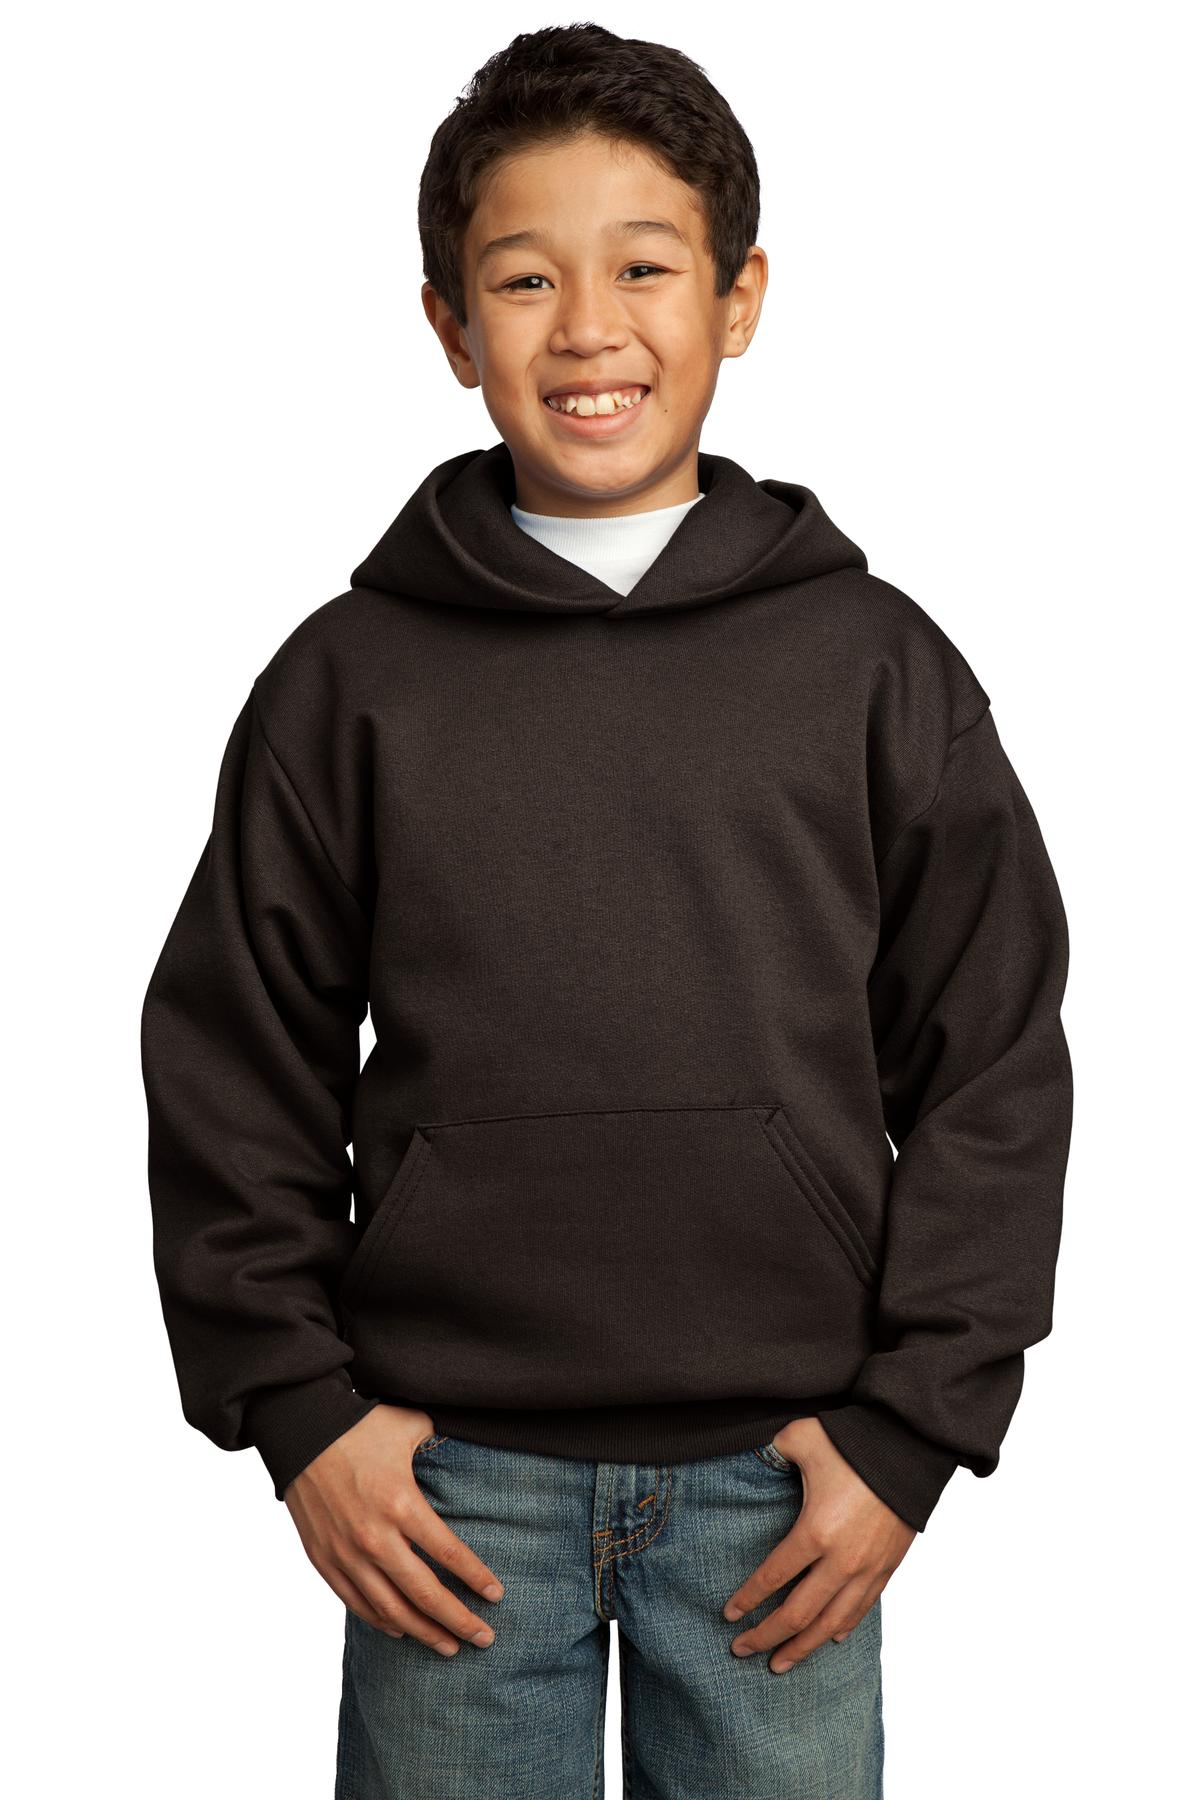 Port & Company ®  - Youth Core Fleece Pullover Hooded Sweatshirt.  PC90YH - Dark Chocolate Brown